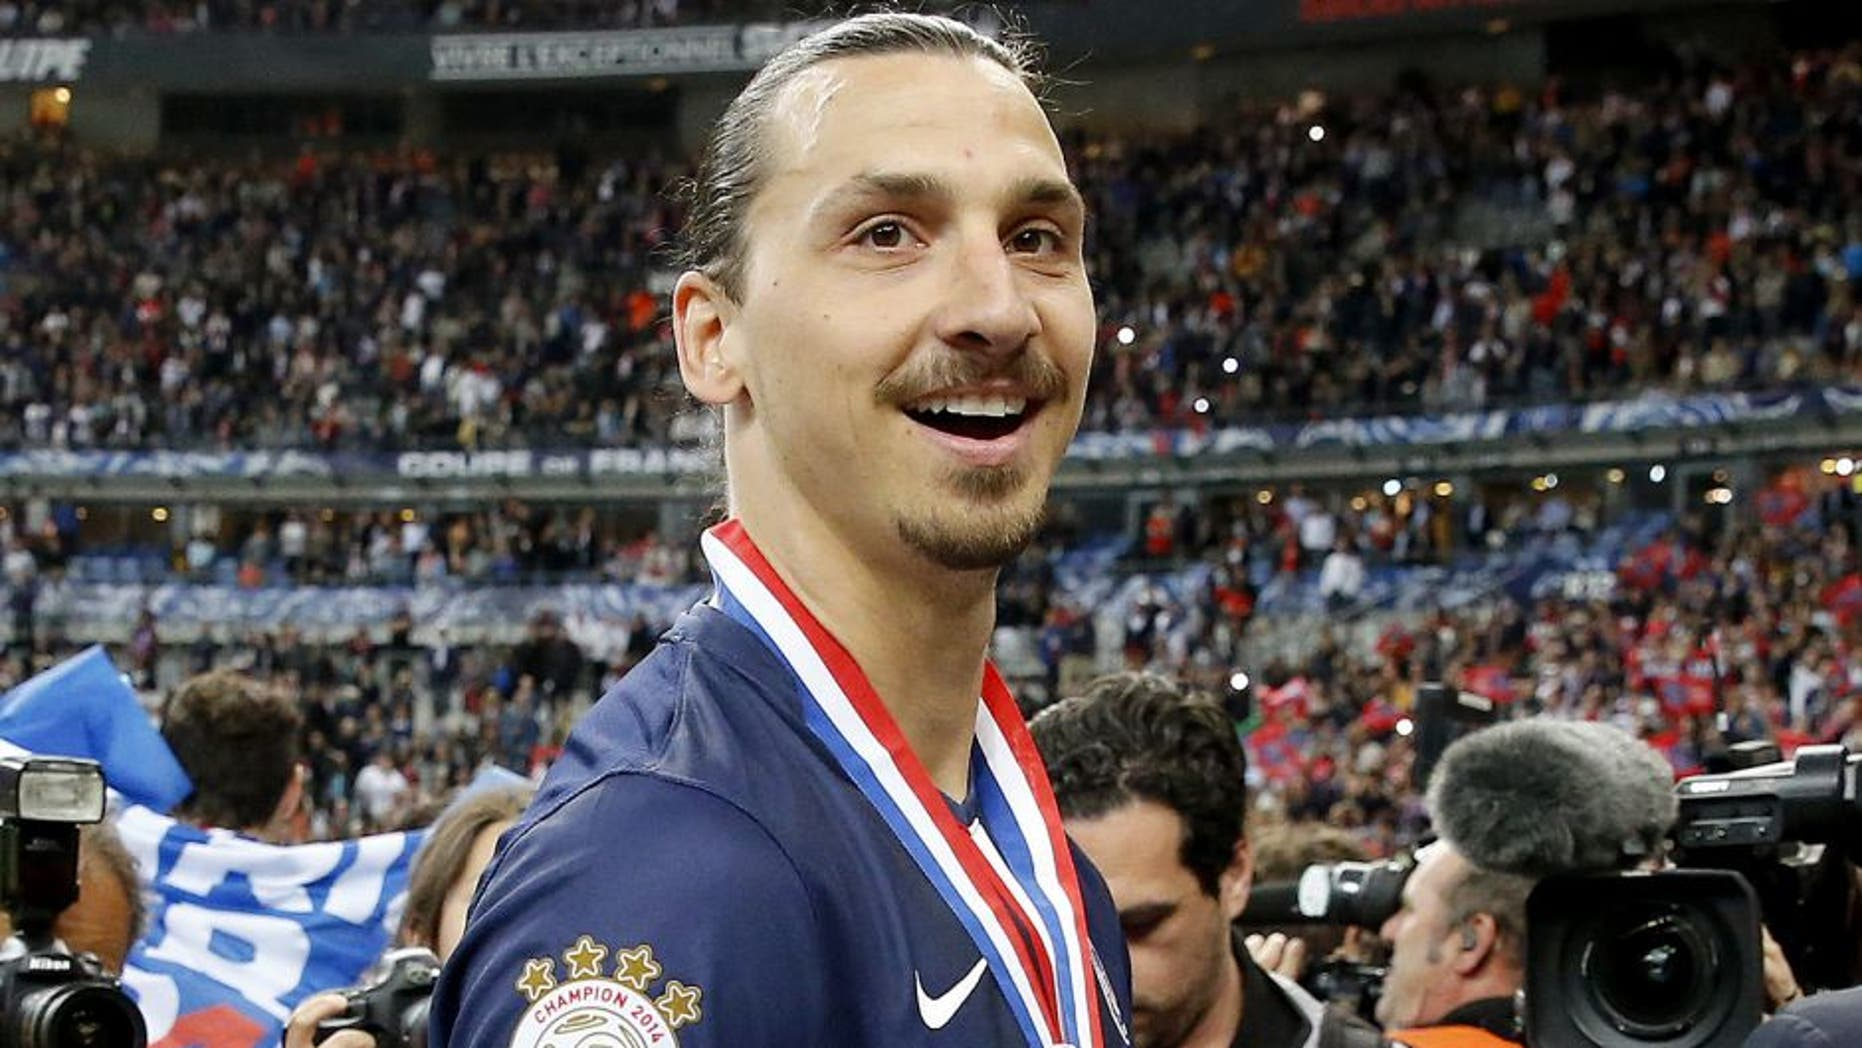 PARIS, FRANCE - MAY 30: Zlatan Ibrahimovic of PSG celebrates the victory after the French Cup Final between Paris Saint-Germain (PSG) and AJ Auxerre at Stade de France on May 30, 2015 in Saint-Denis nearby Paris, France. (Photo by Jean Catuffe/Getty Images)